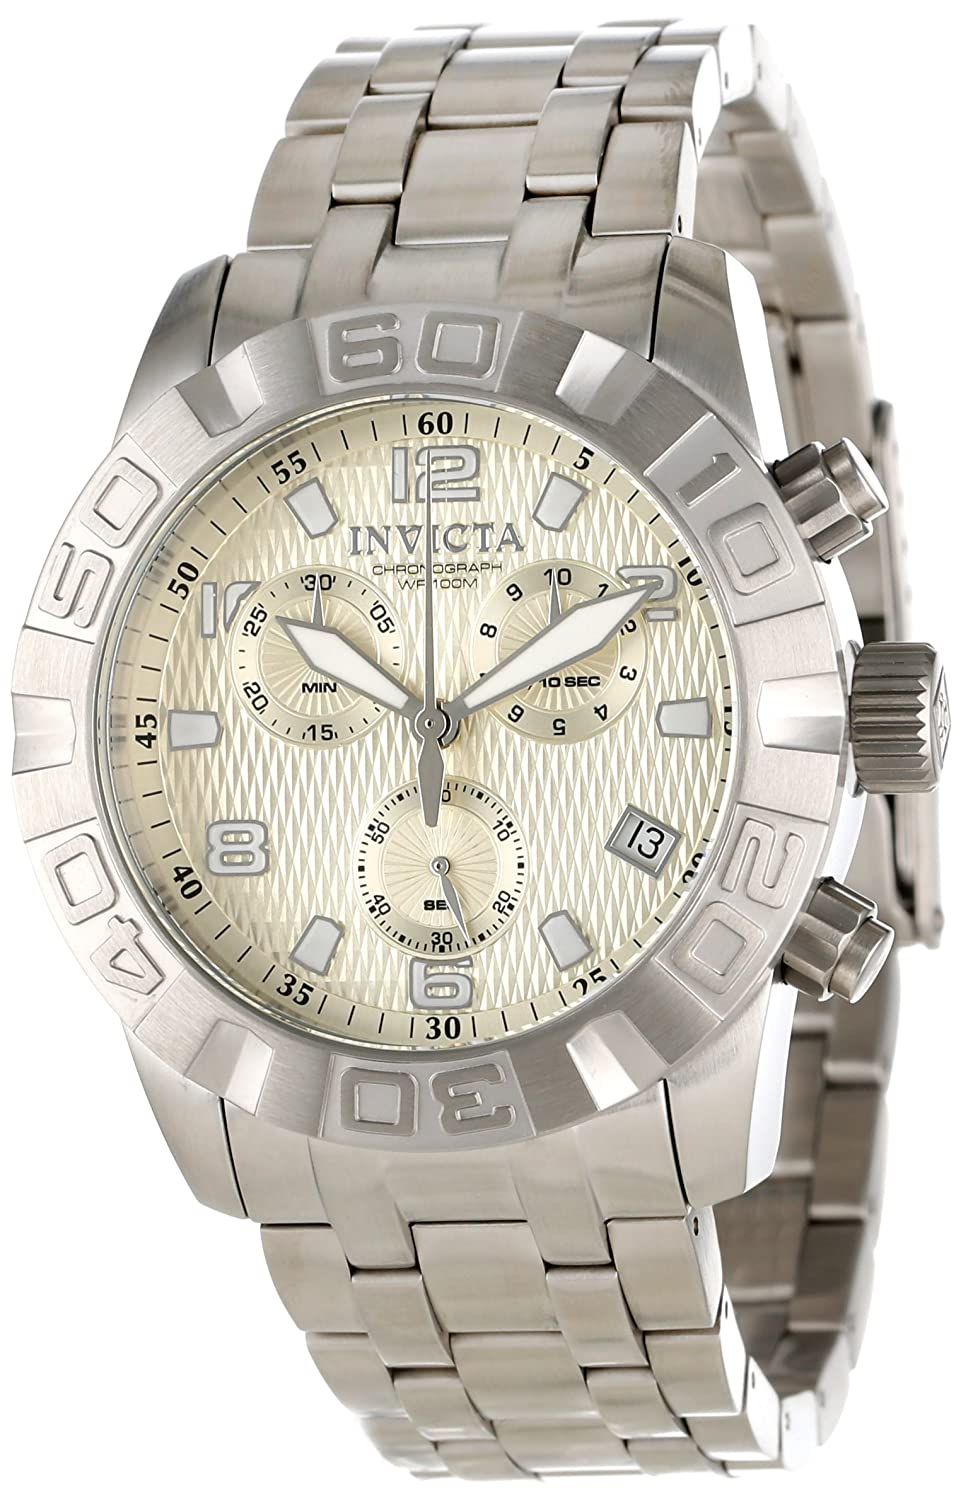 Invicta Men s 11457 Pro Diver Chronograph Light Gold Tone Textured Dial Stainless Steel Watch